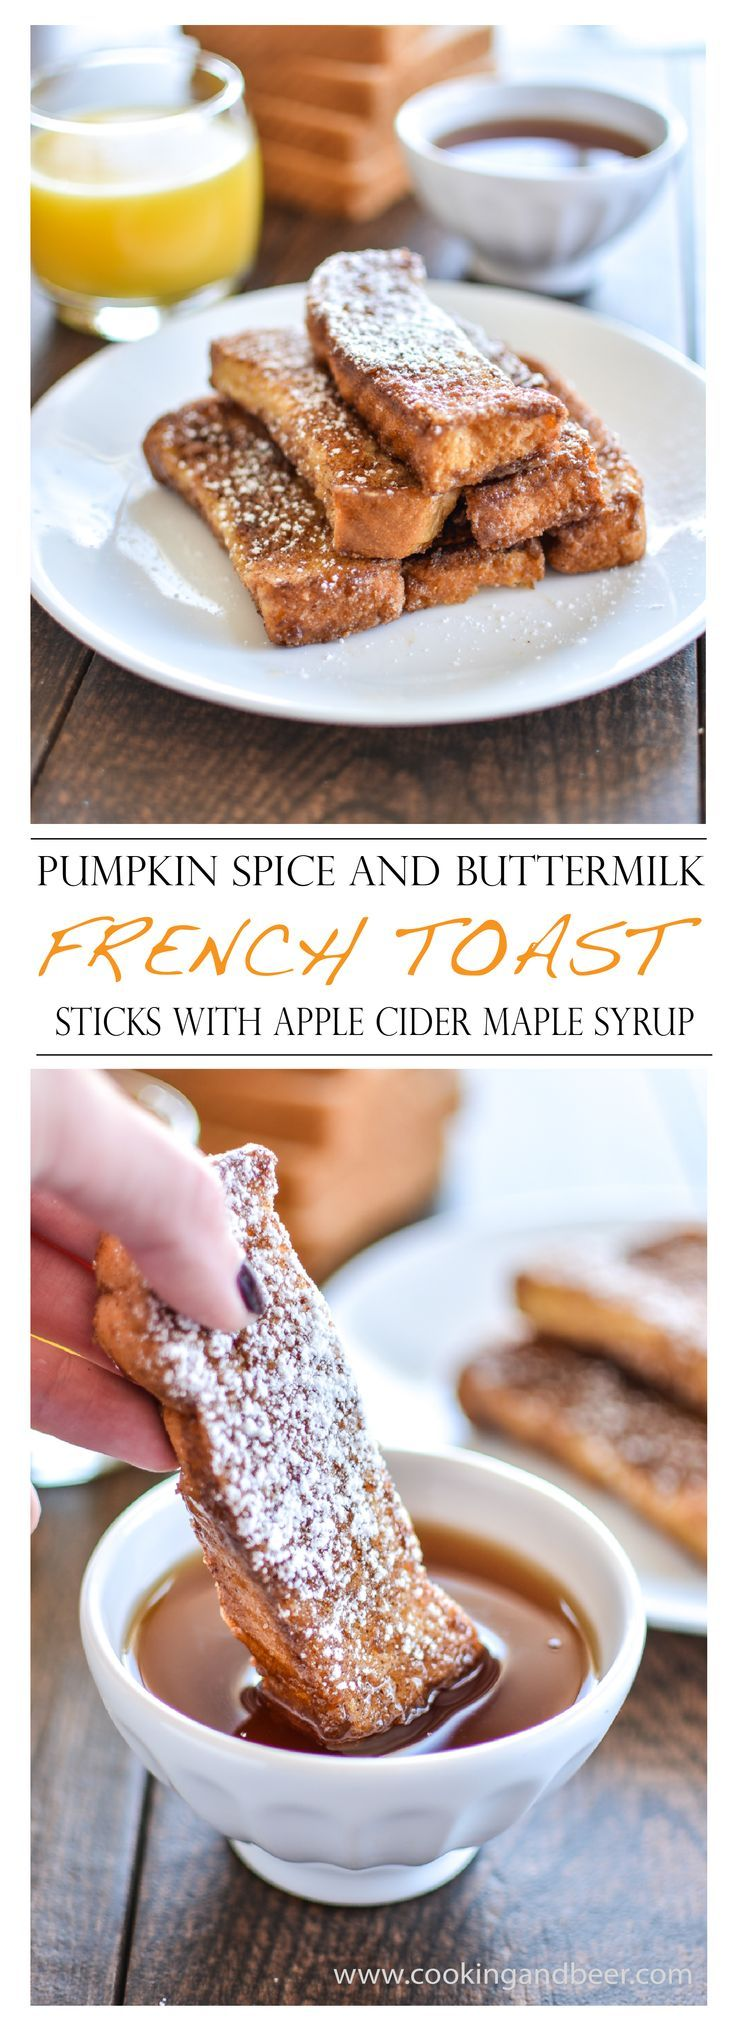 Pumpkin Spice and Buttermilk French Toast Sticks with Apple Cider Maple Syrup   www.cookingandbeer.com   @jalanesulia